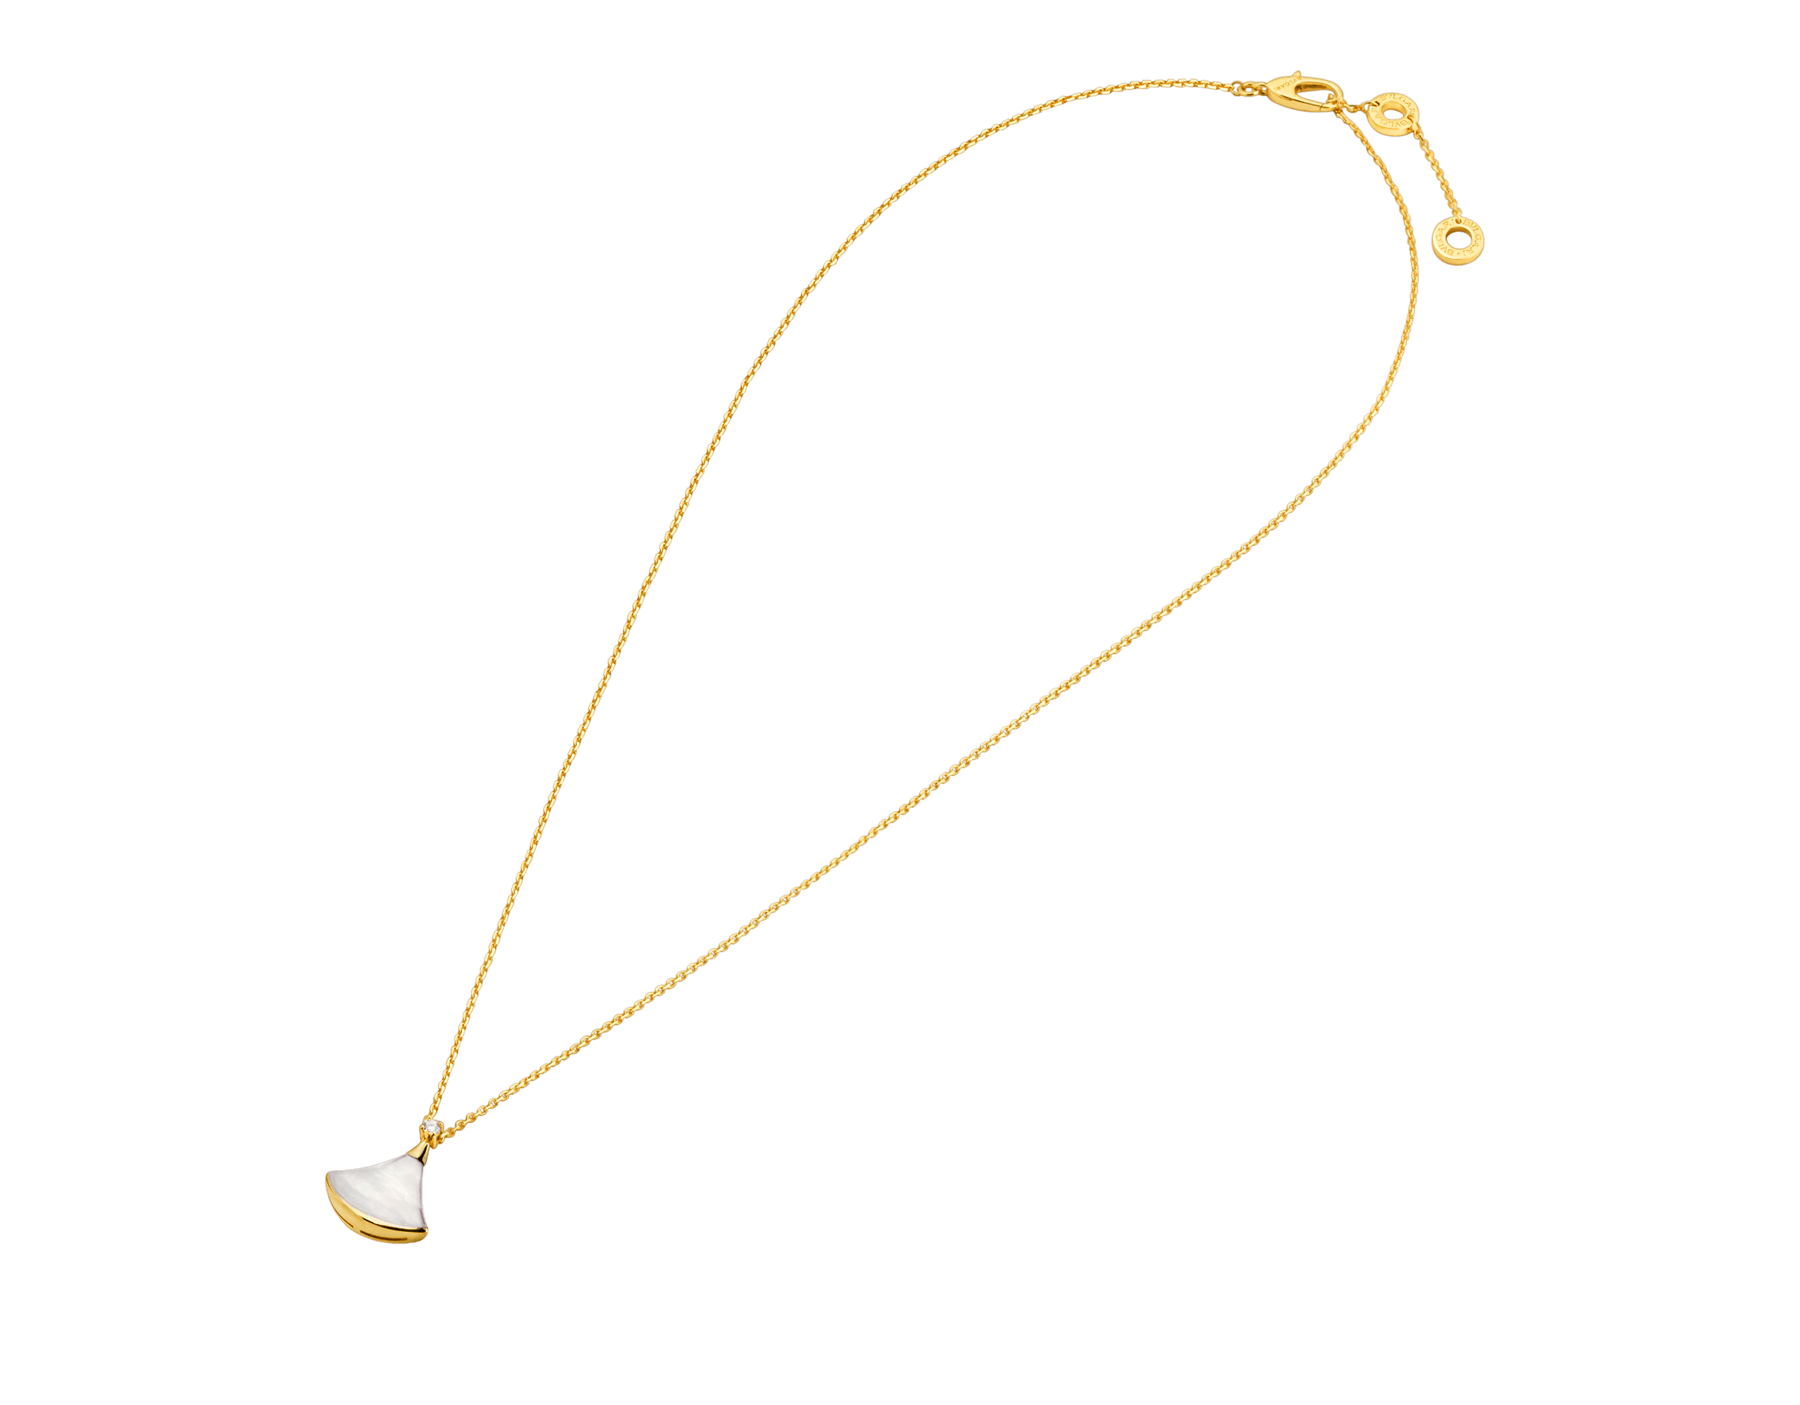 DIVAS' DREAM 18 kt yellow gold necklace with pendant set with one diamond and mother-of-pearl element 357510 image 2